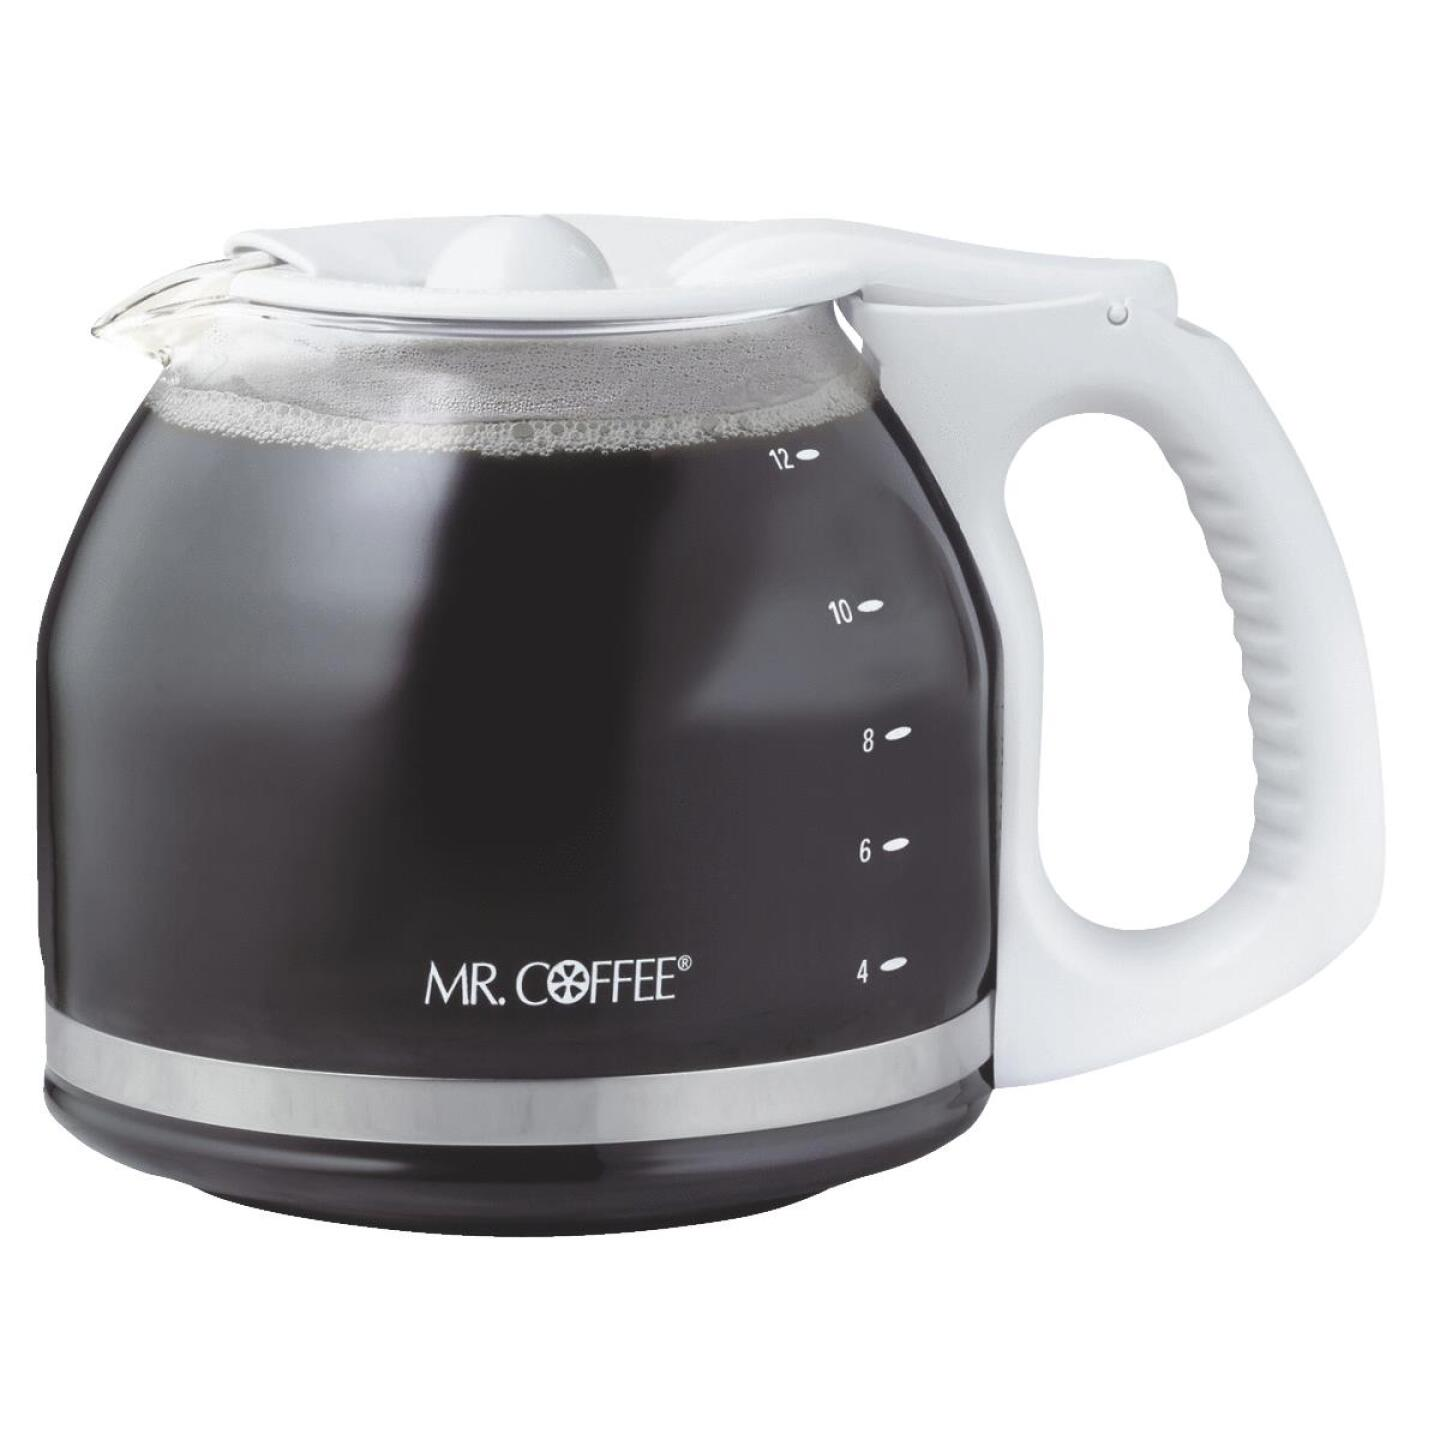 Mr. Coffee 12 Cup Replacement White Coffee Decanter Image 1